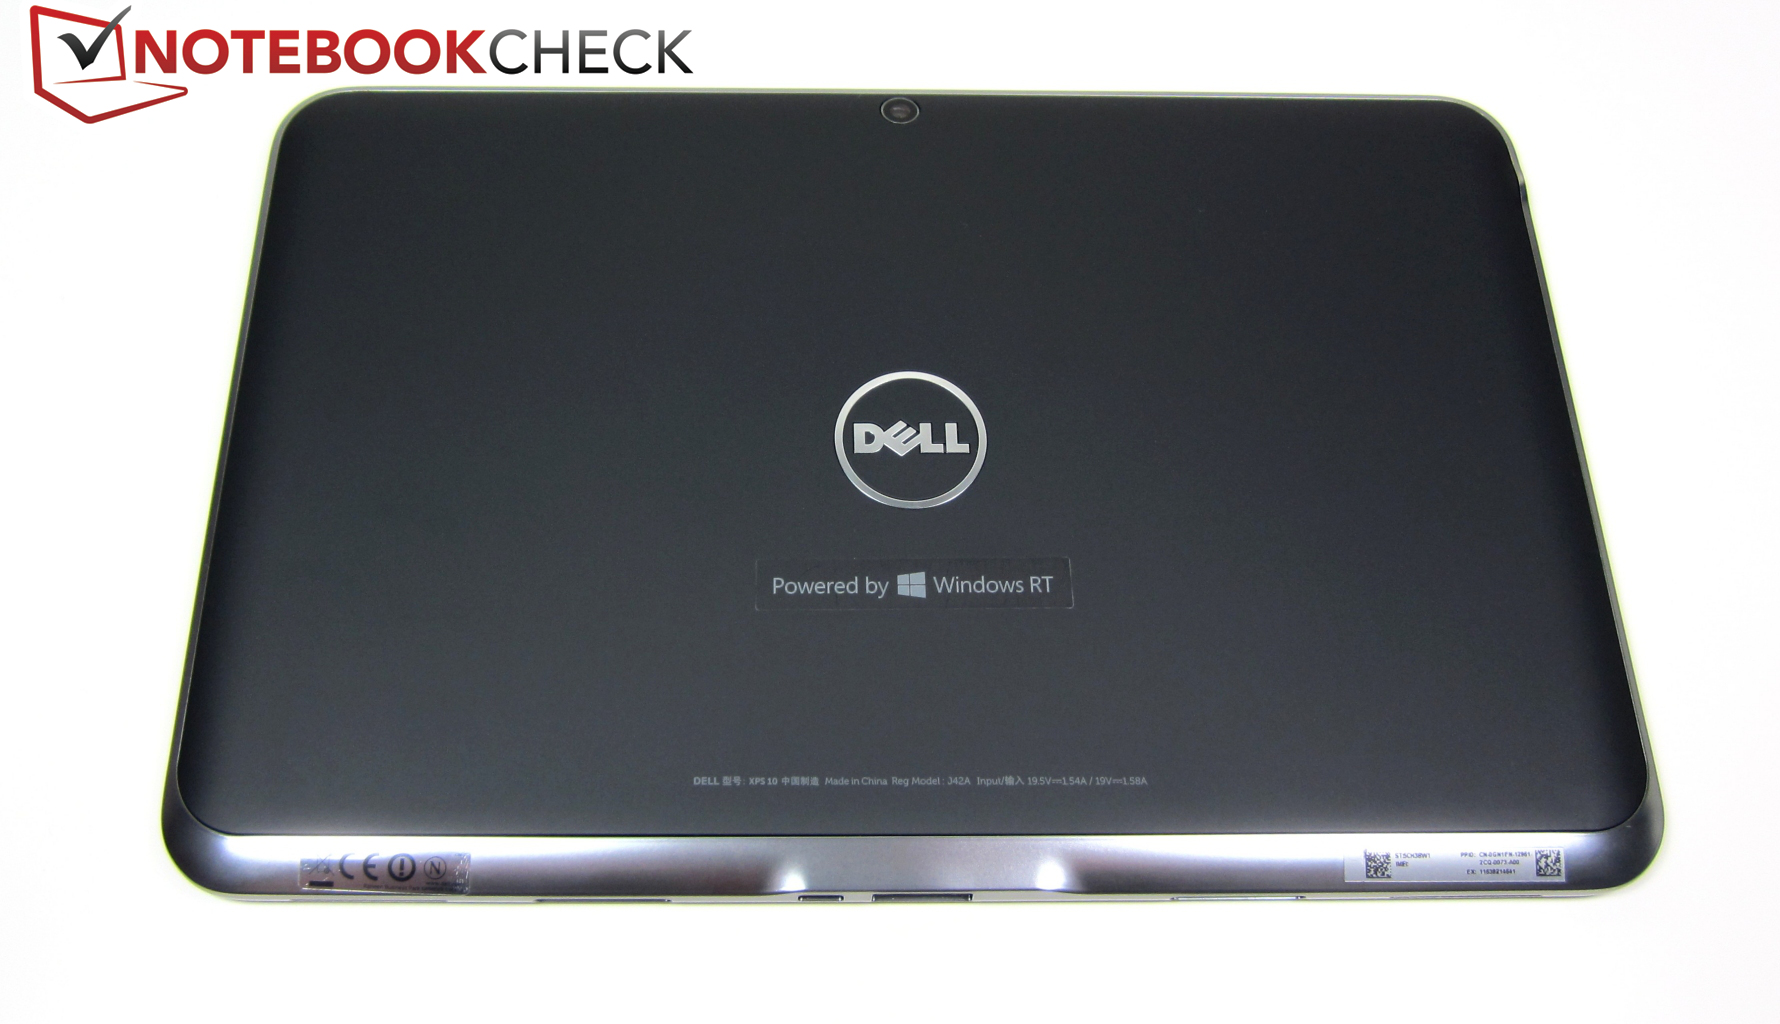 dell xps 10 recovery image download